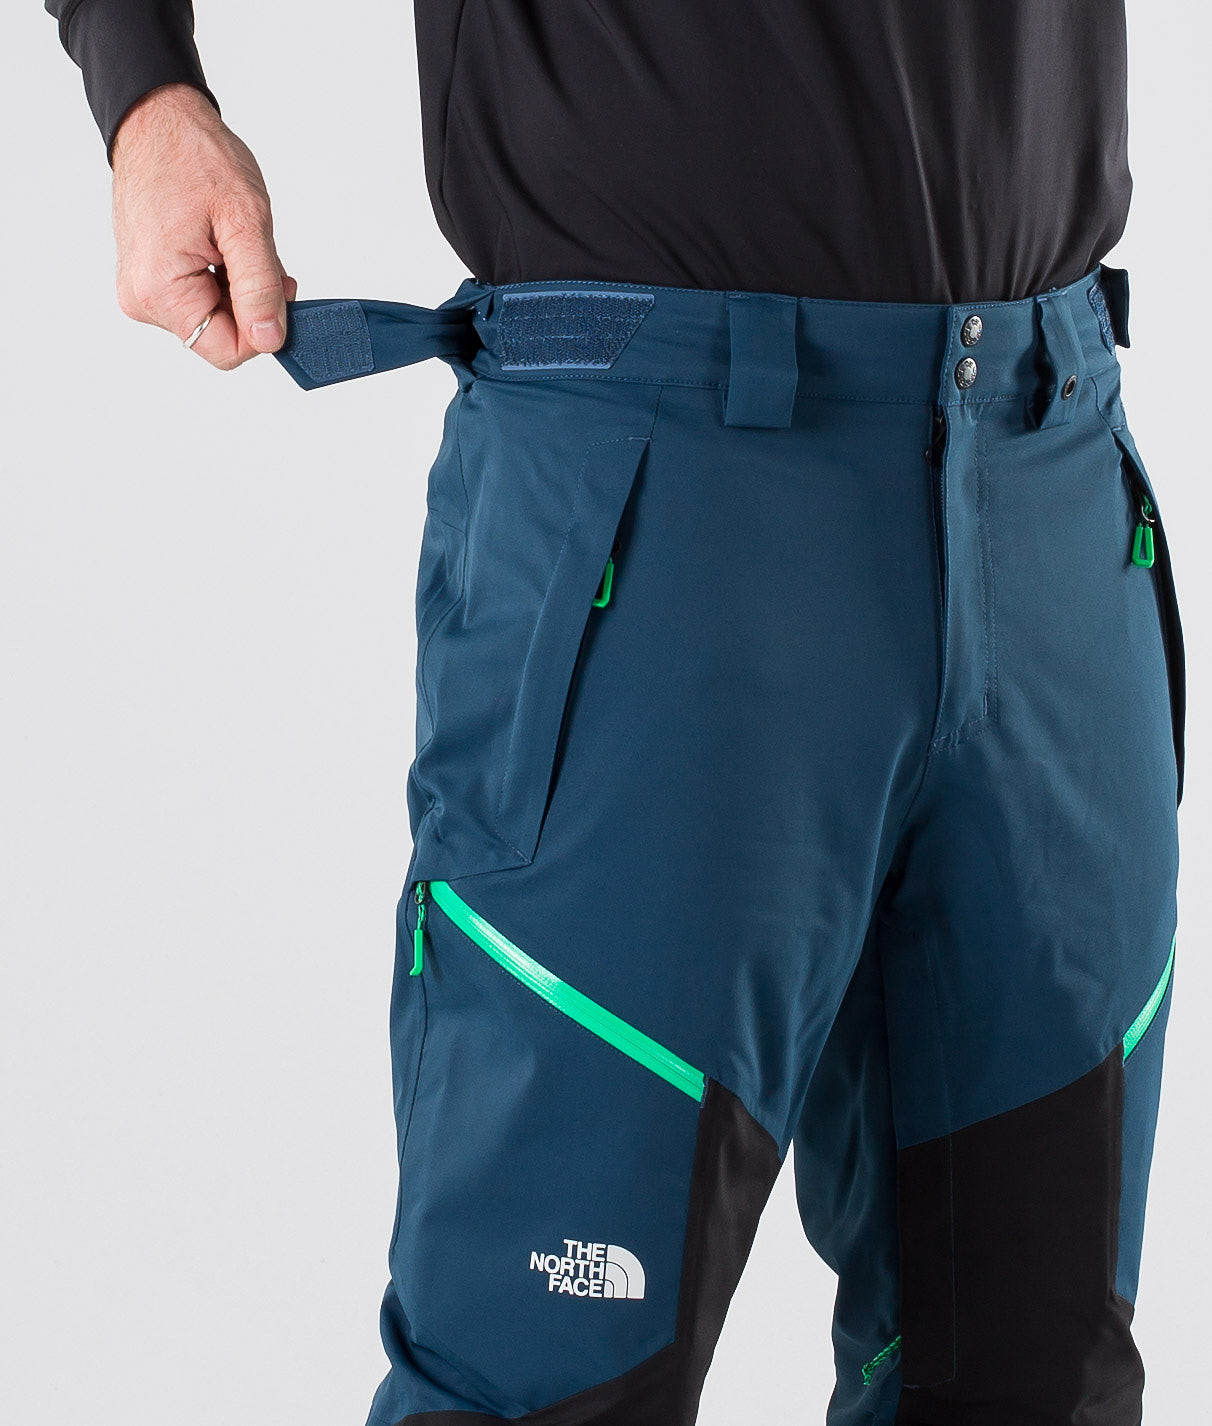 Buy Chakal Snow Pants from The North Face at Ridestore.com - Always free shipping, free returns and 30 days money back guarantee